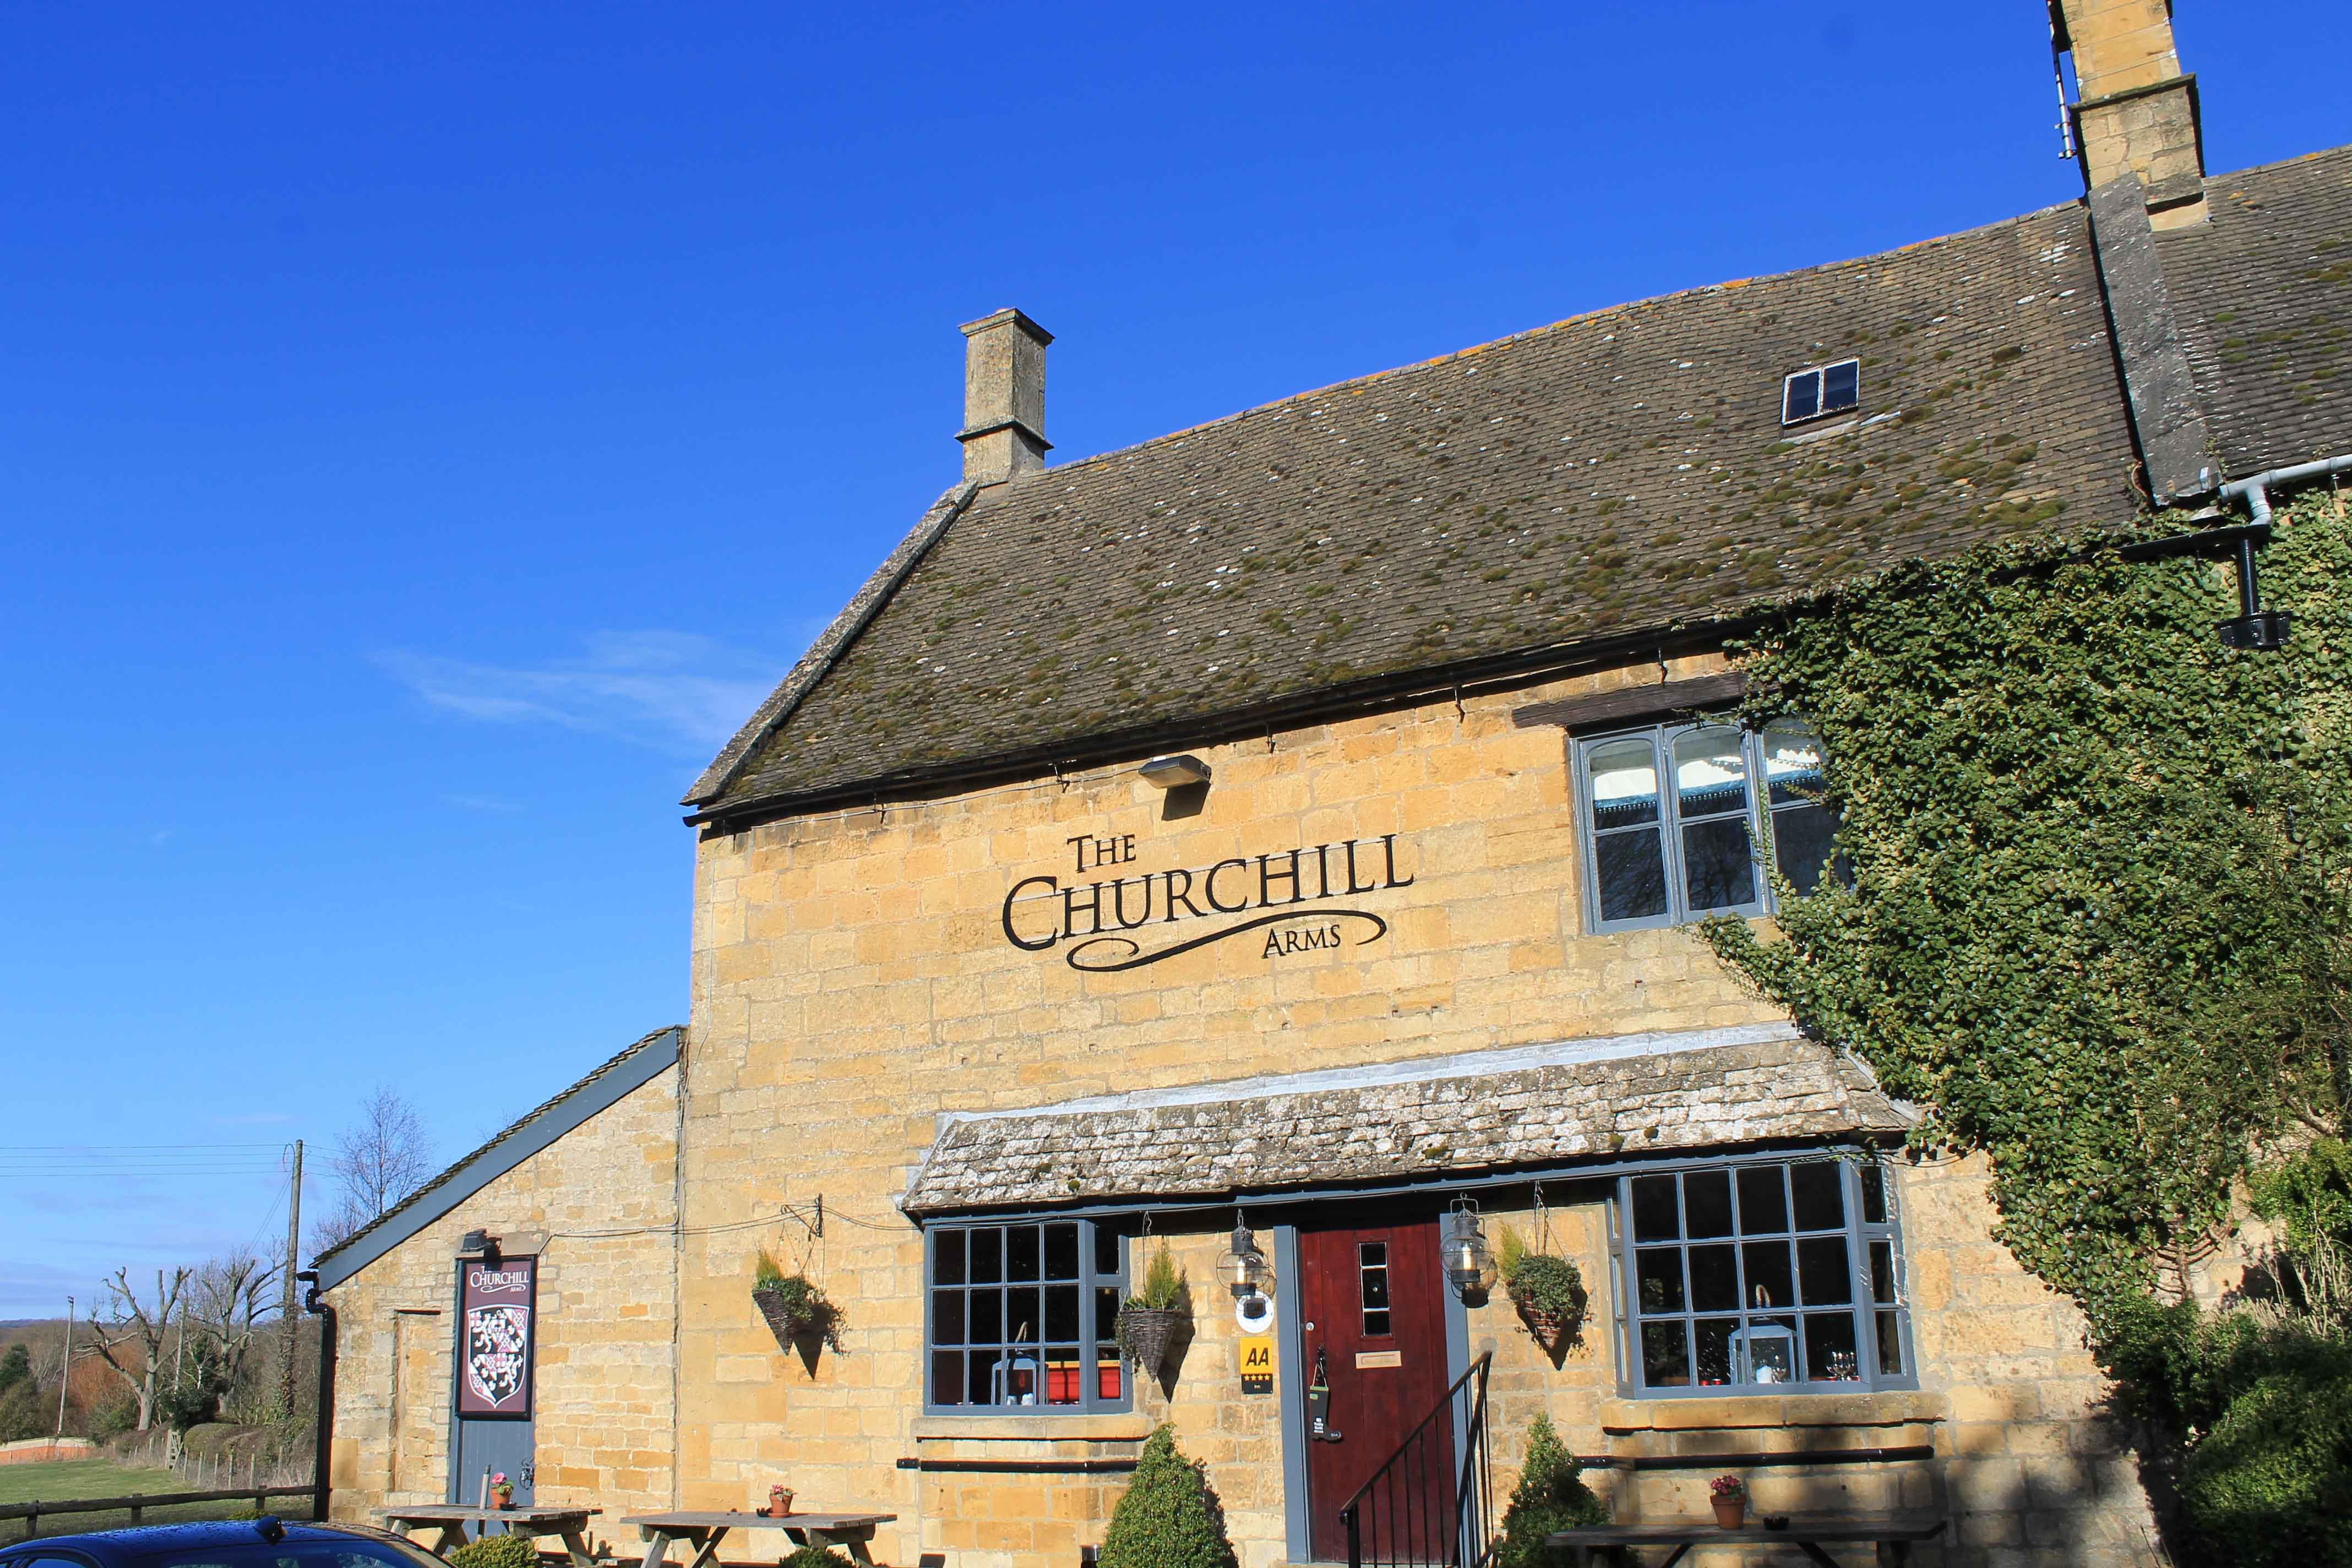 The Churchill Arms, The Cotswolds